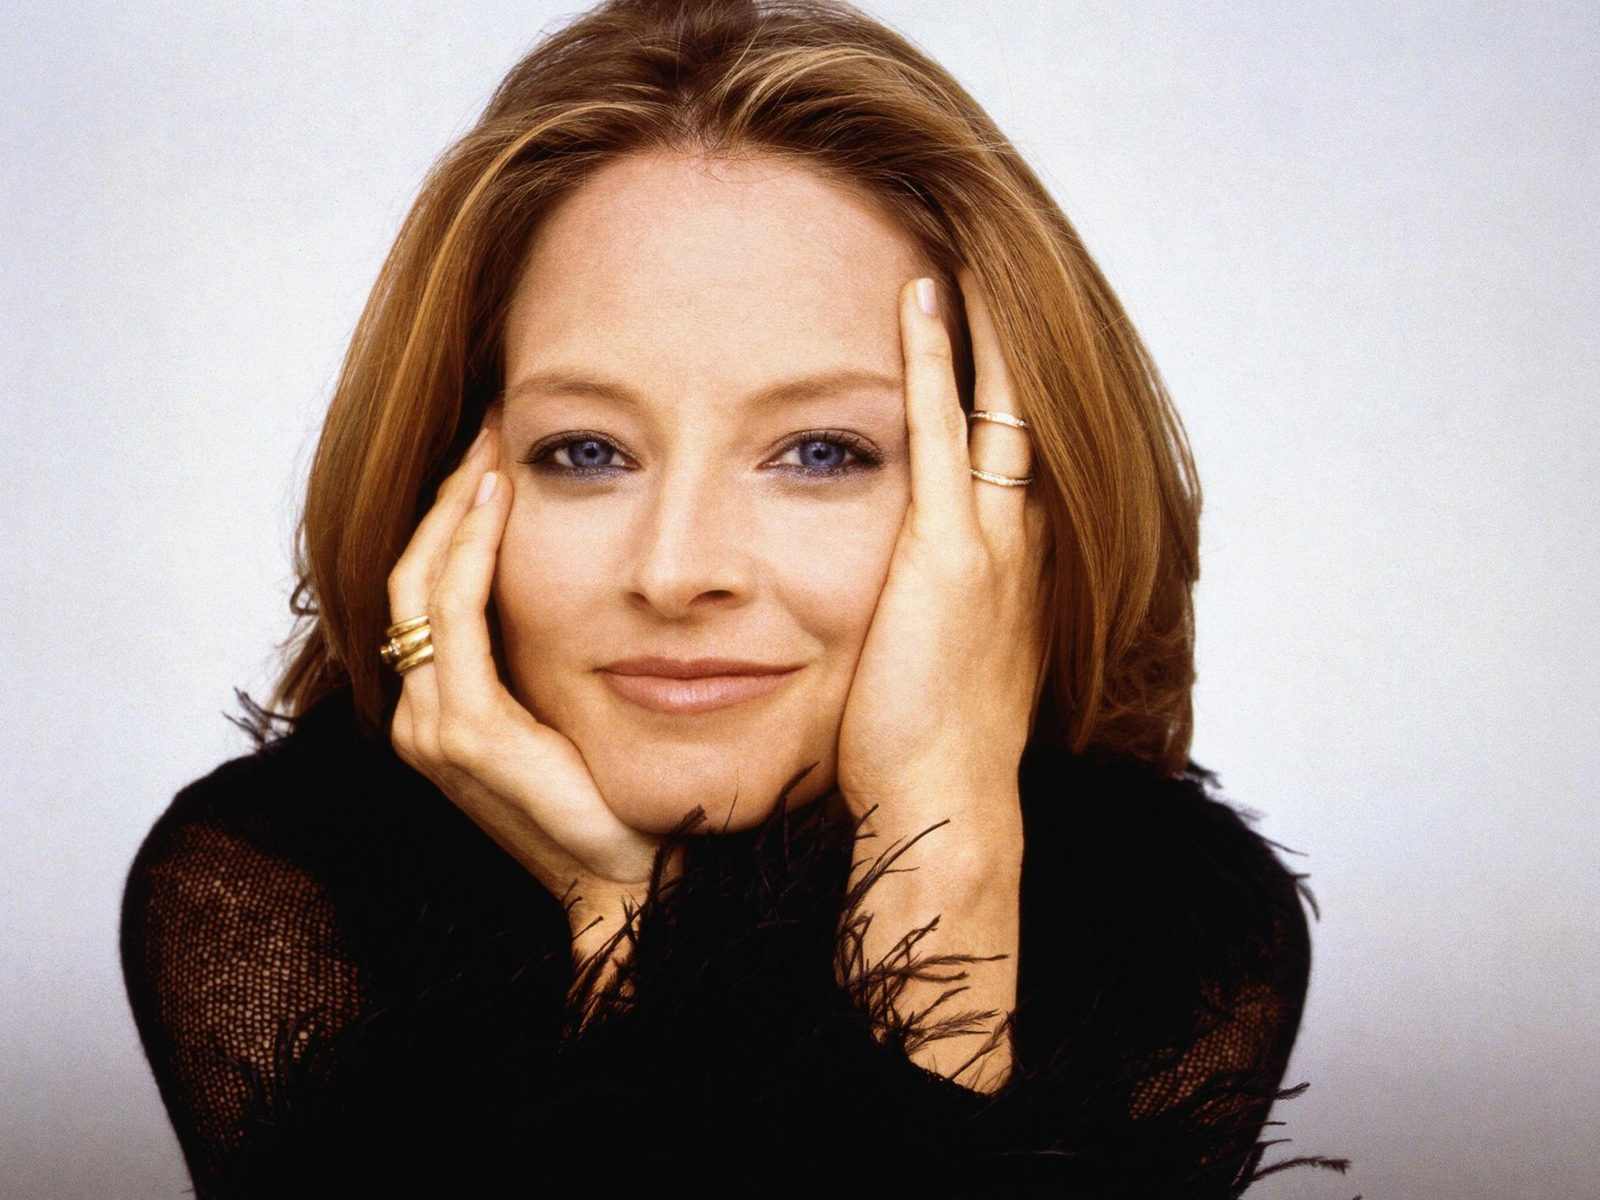 1600x1200 - Jodie Foster Wallpapers 29